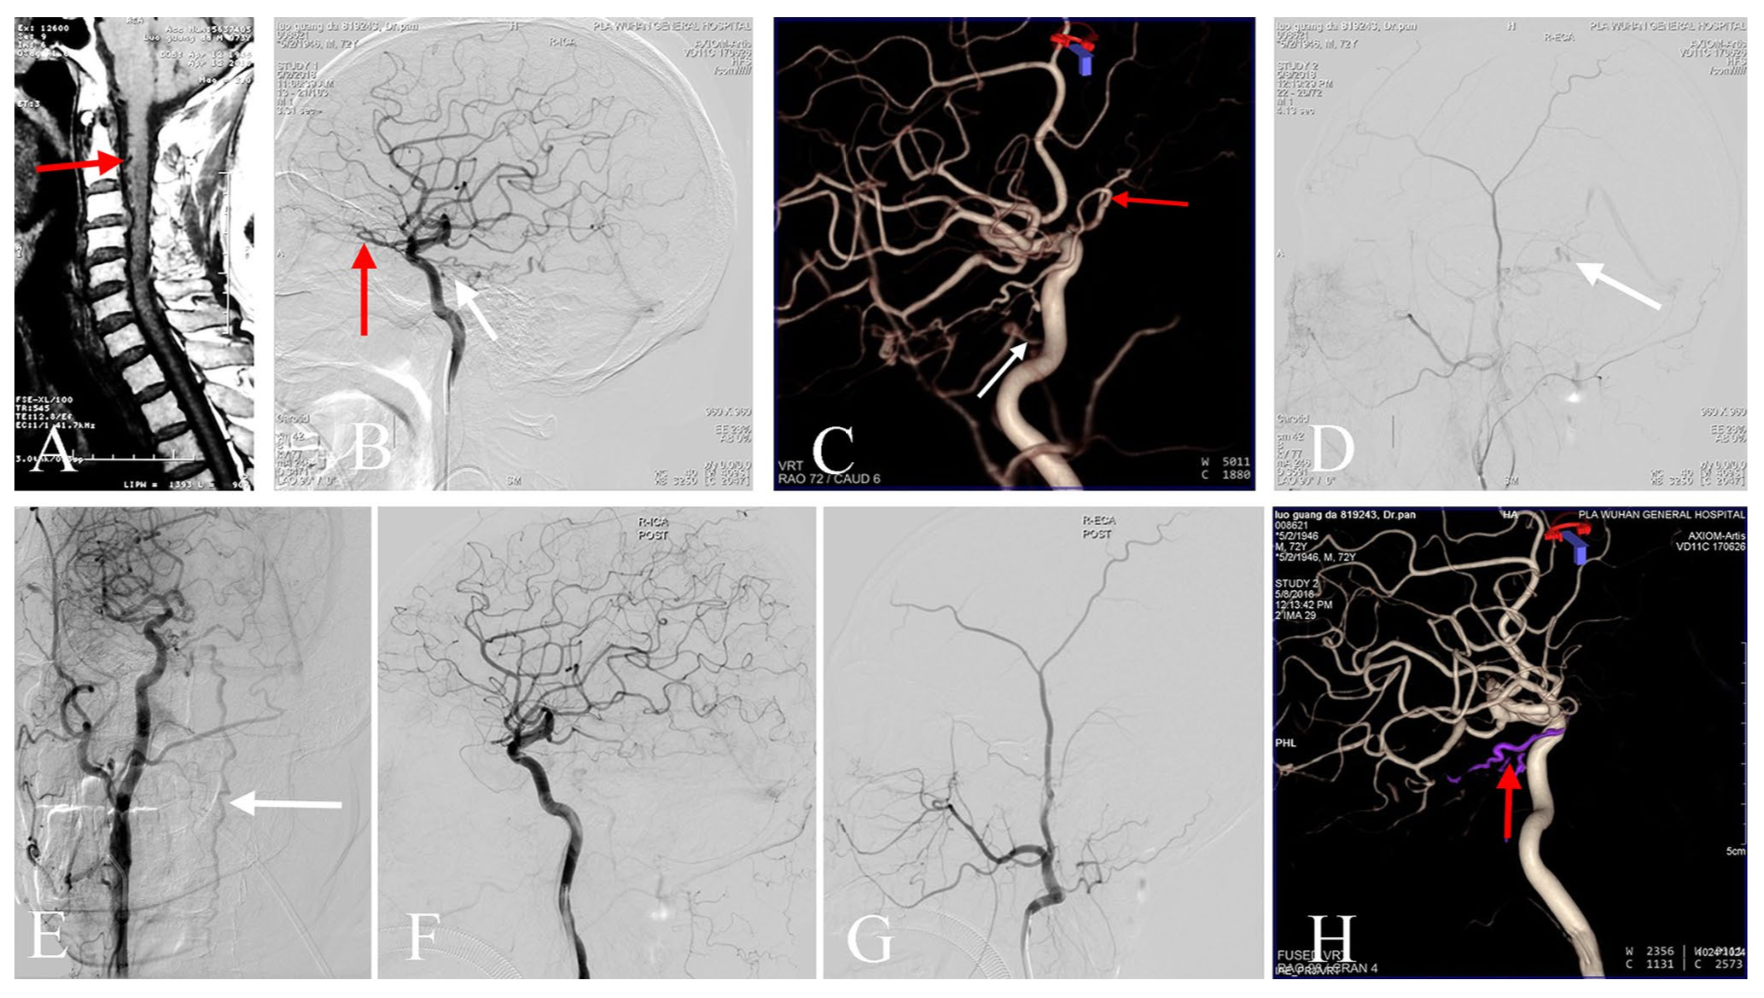 Analysis of spinal angiograms that missed diagnosis of spinal vascular diseases with venous hypertensive myelopathy: the non-technical factors